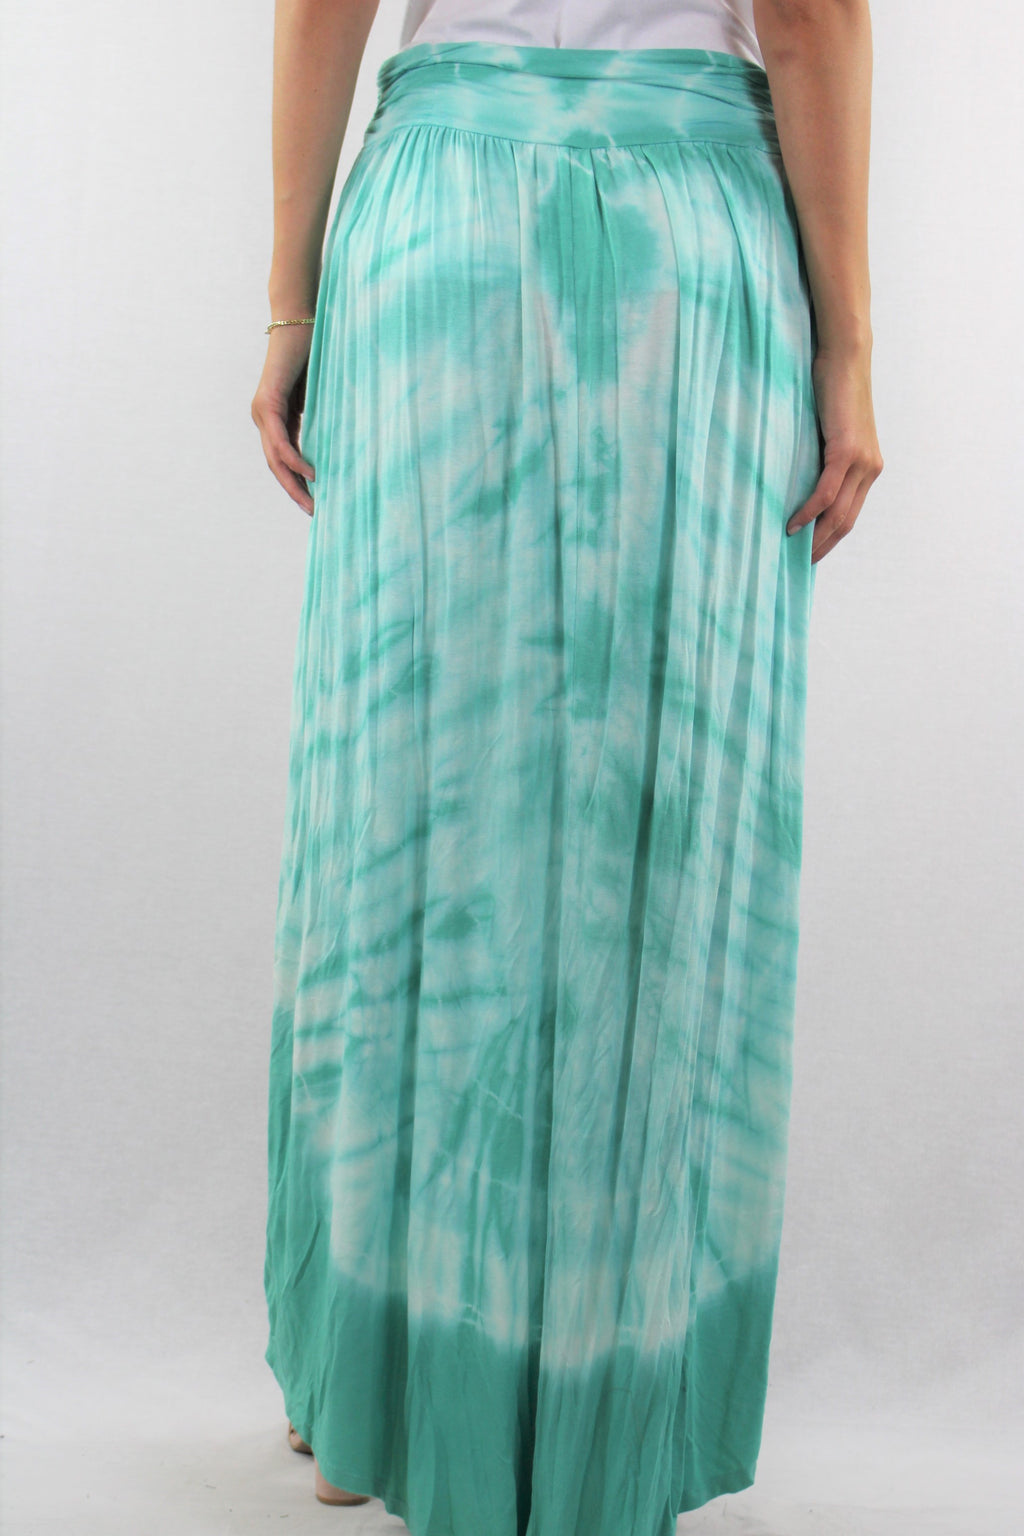 Tie Dye Hi Low Hemline Skirt